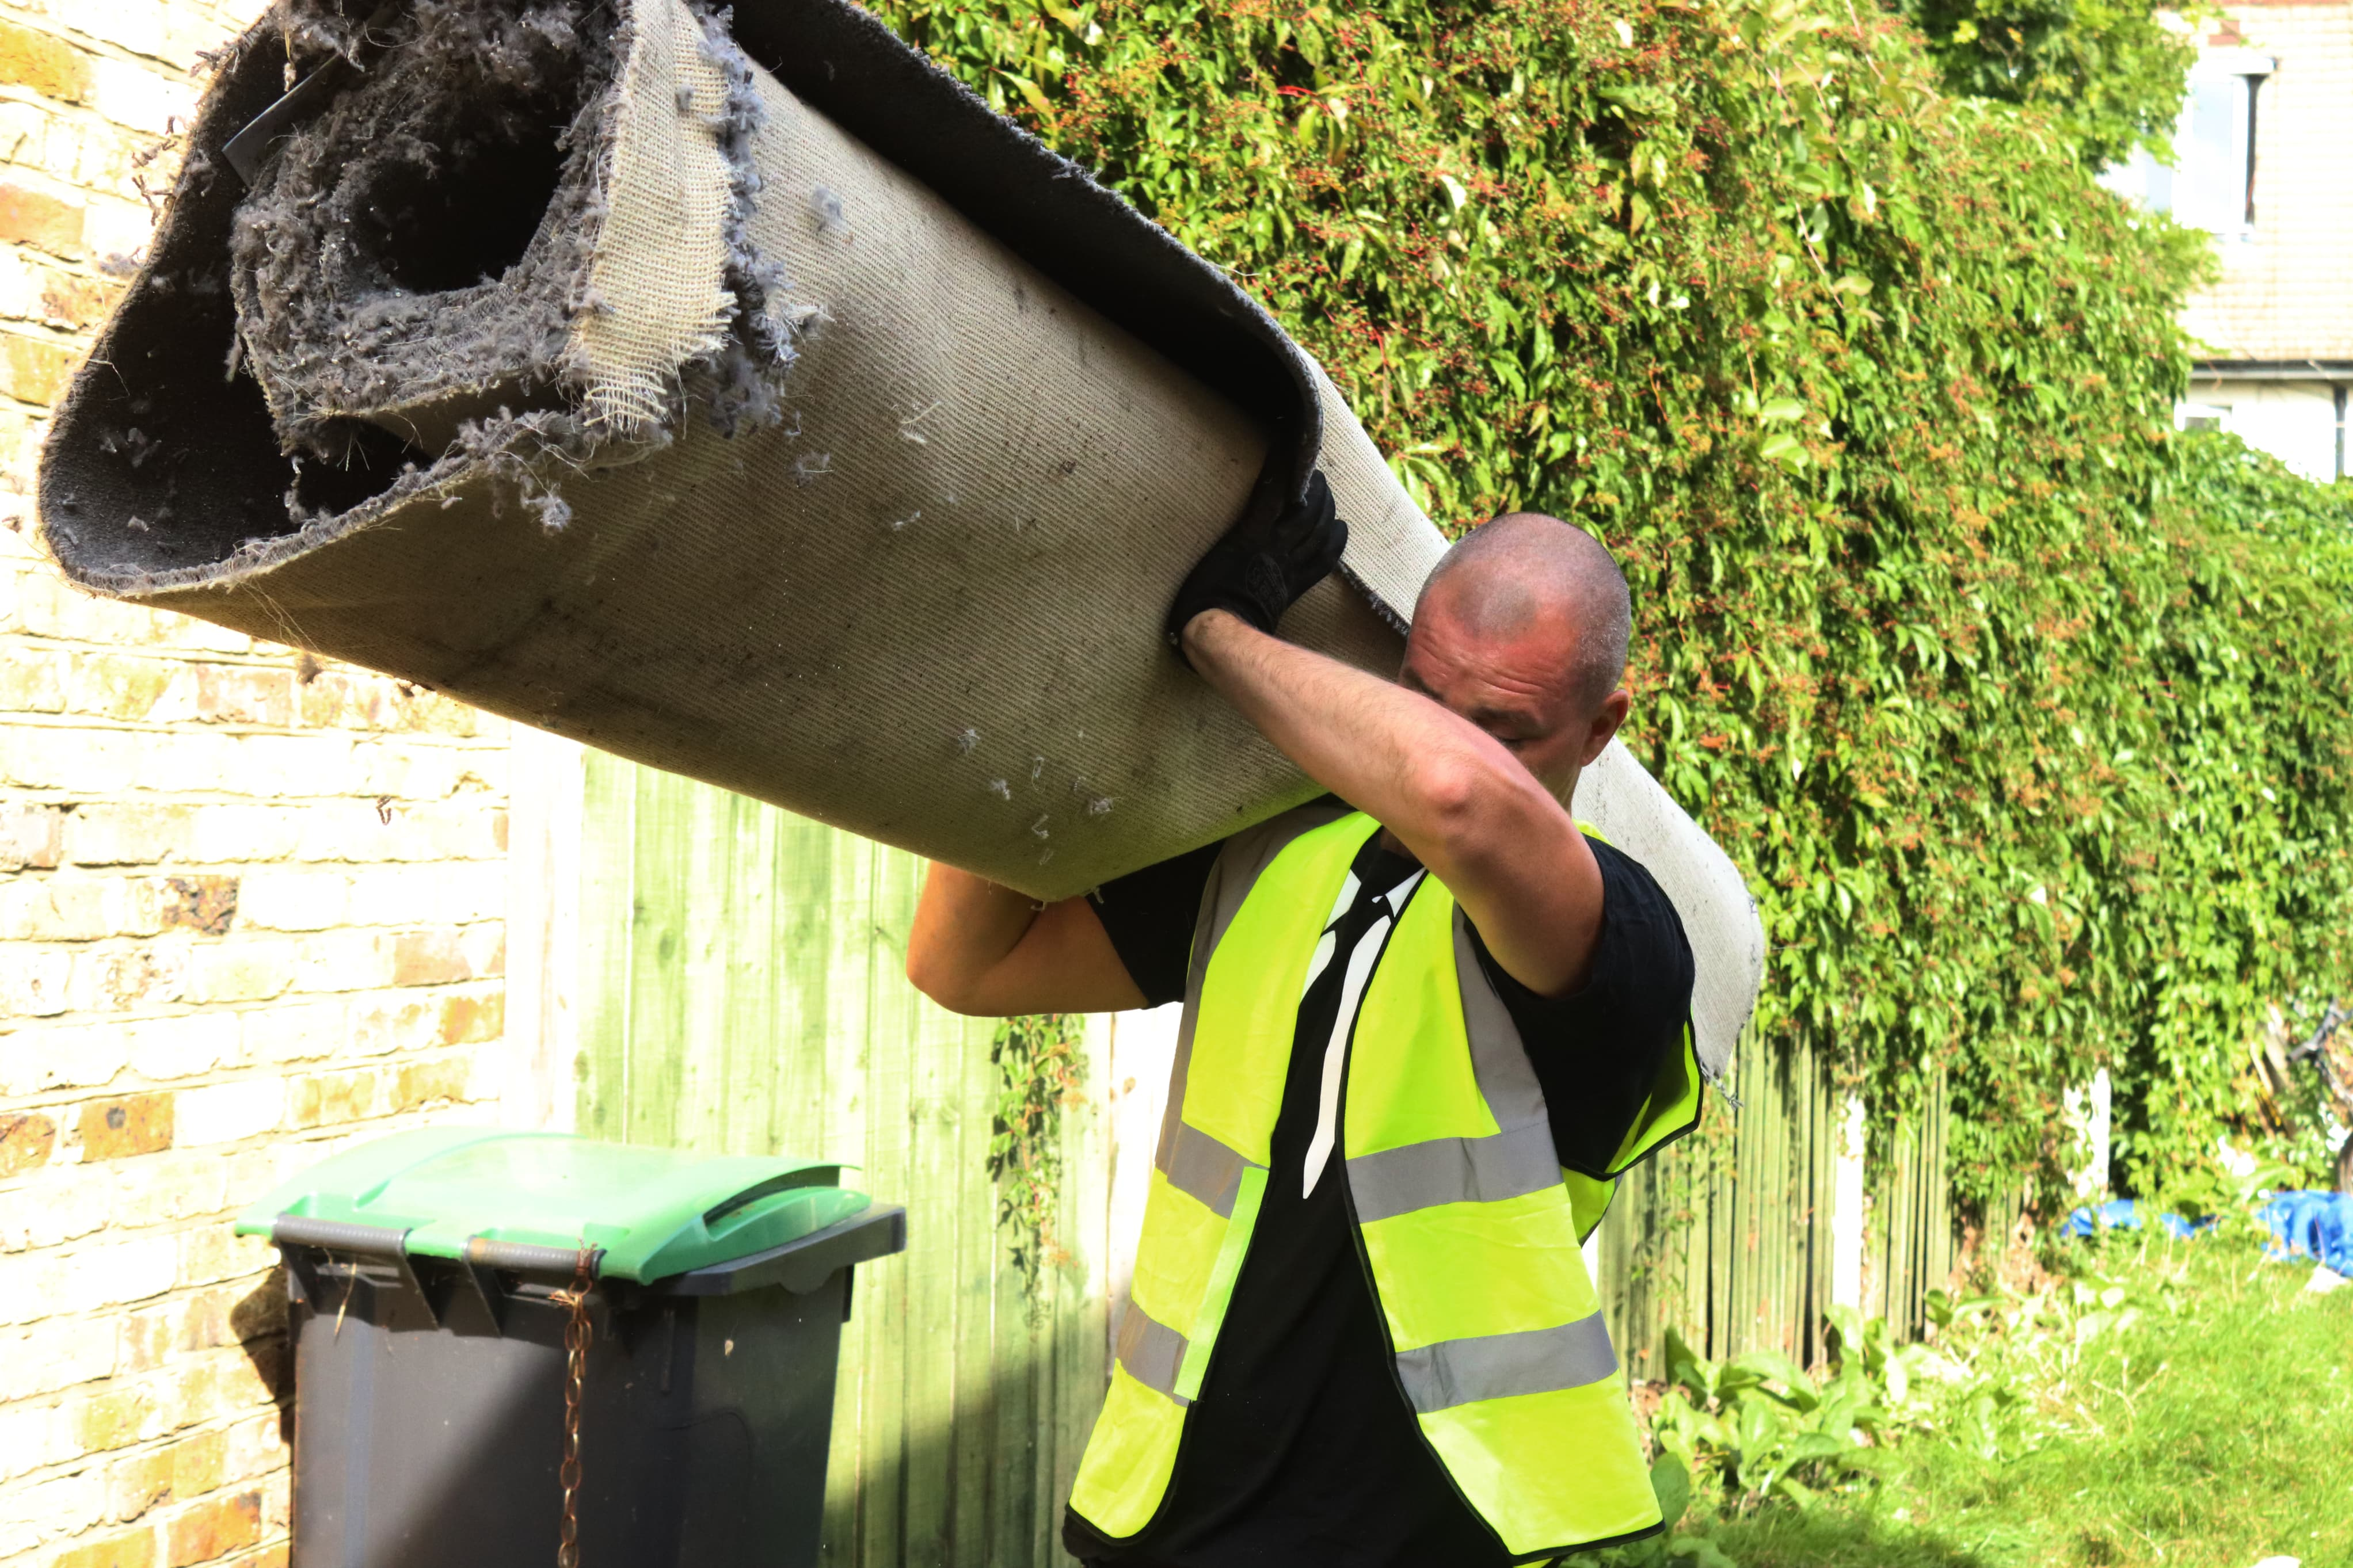 man and van clearance compamny carrying rolled up carpet for carpet disposal